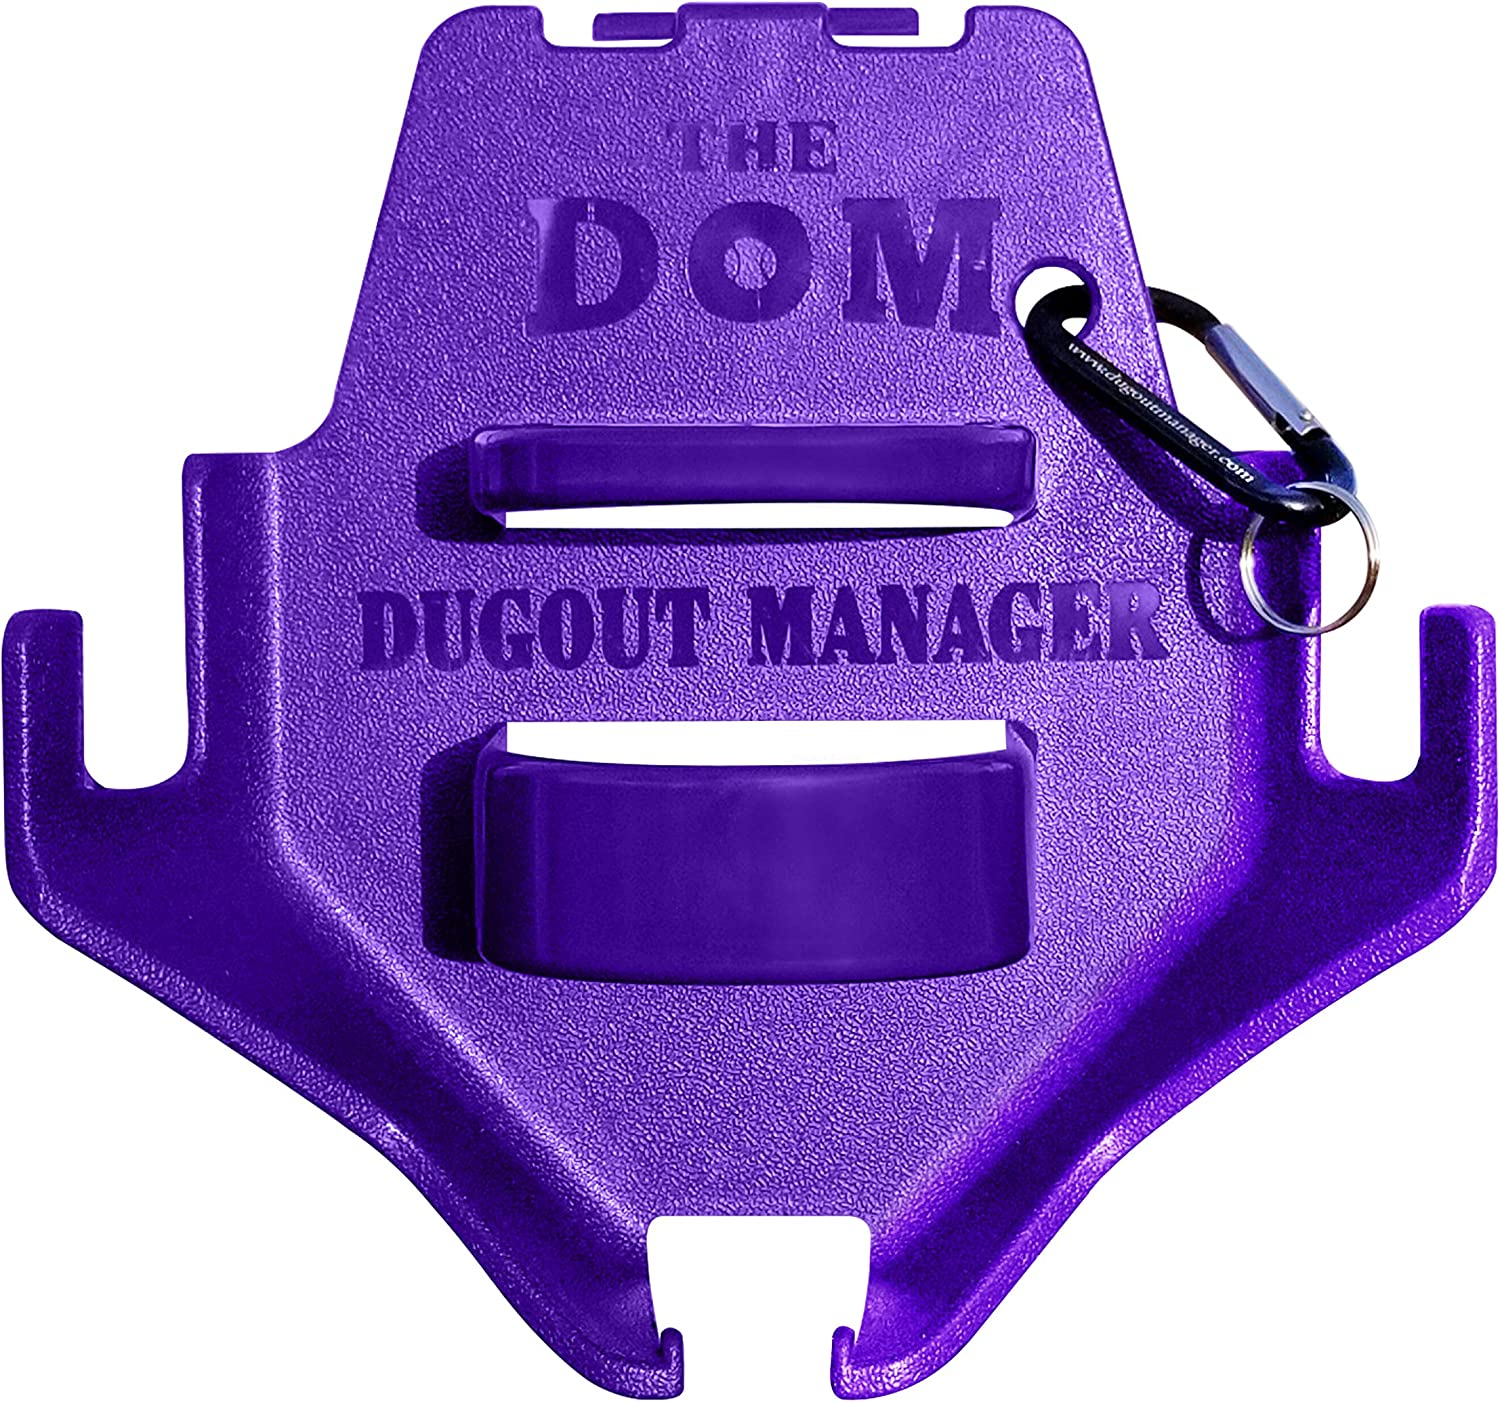 DugoutオーガナイザーThe Dom (11 Count) パープル